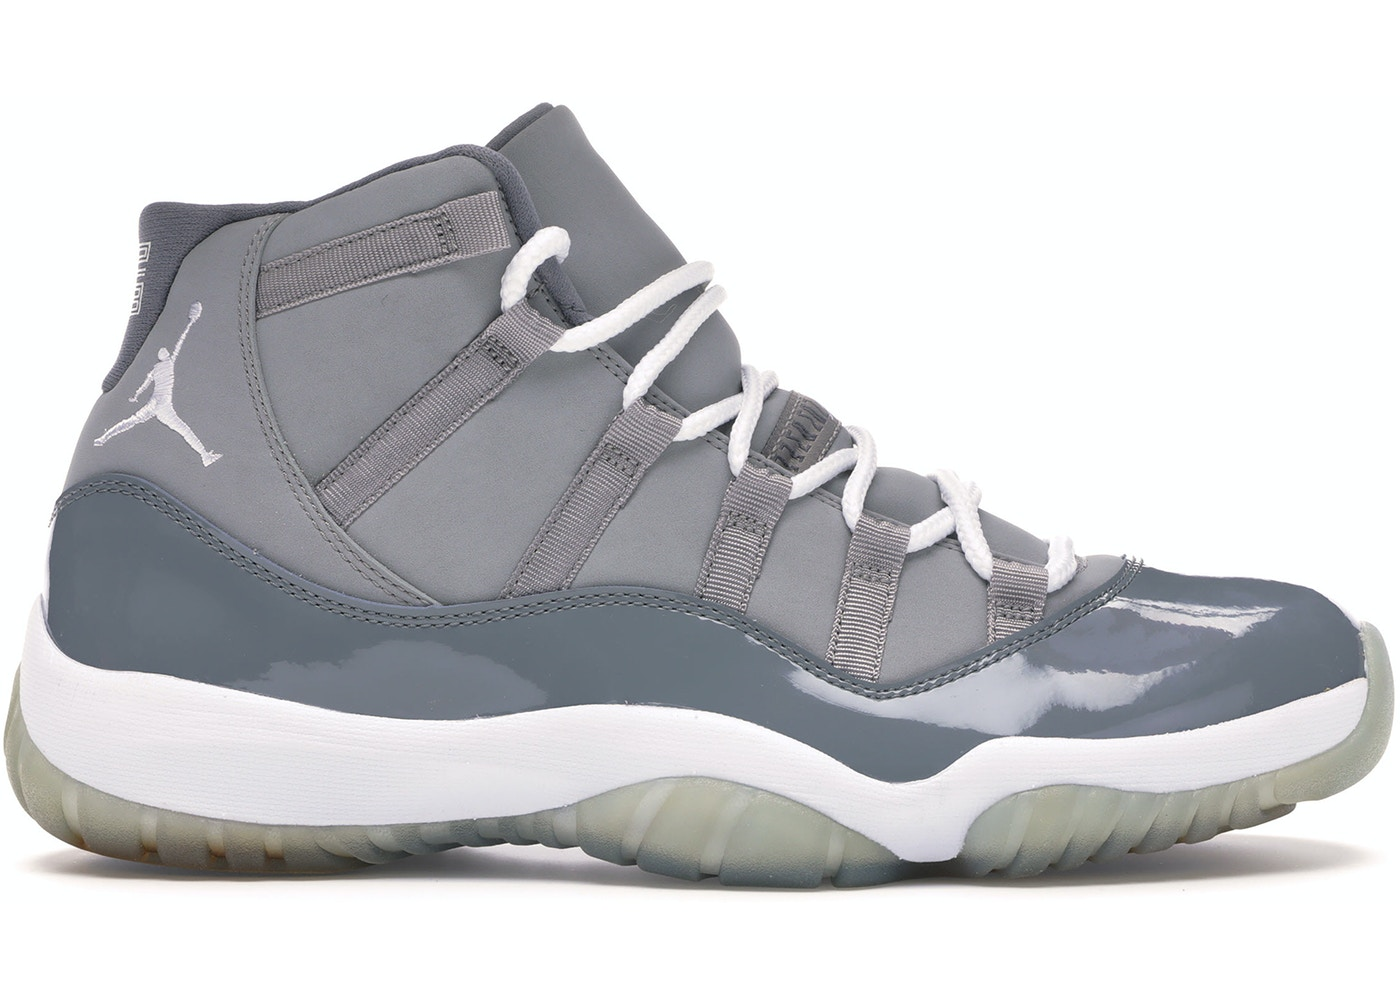 low priced 1c769 f2f25 Jordan 11 Retro Cool Grey (2010)